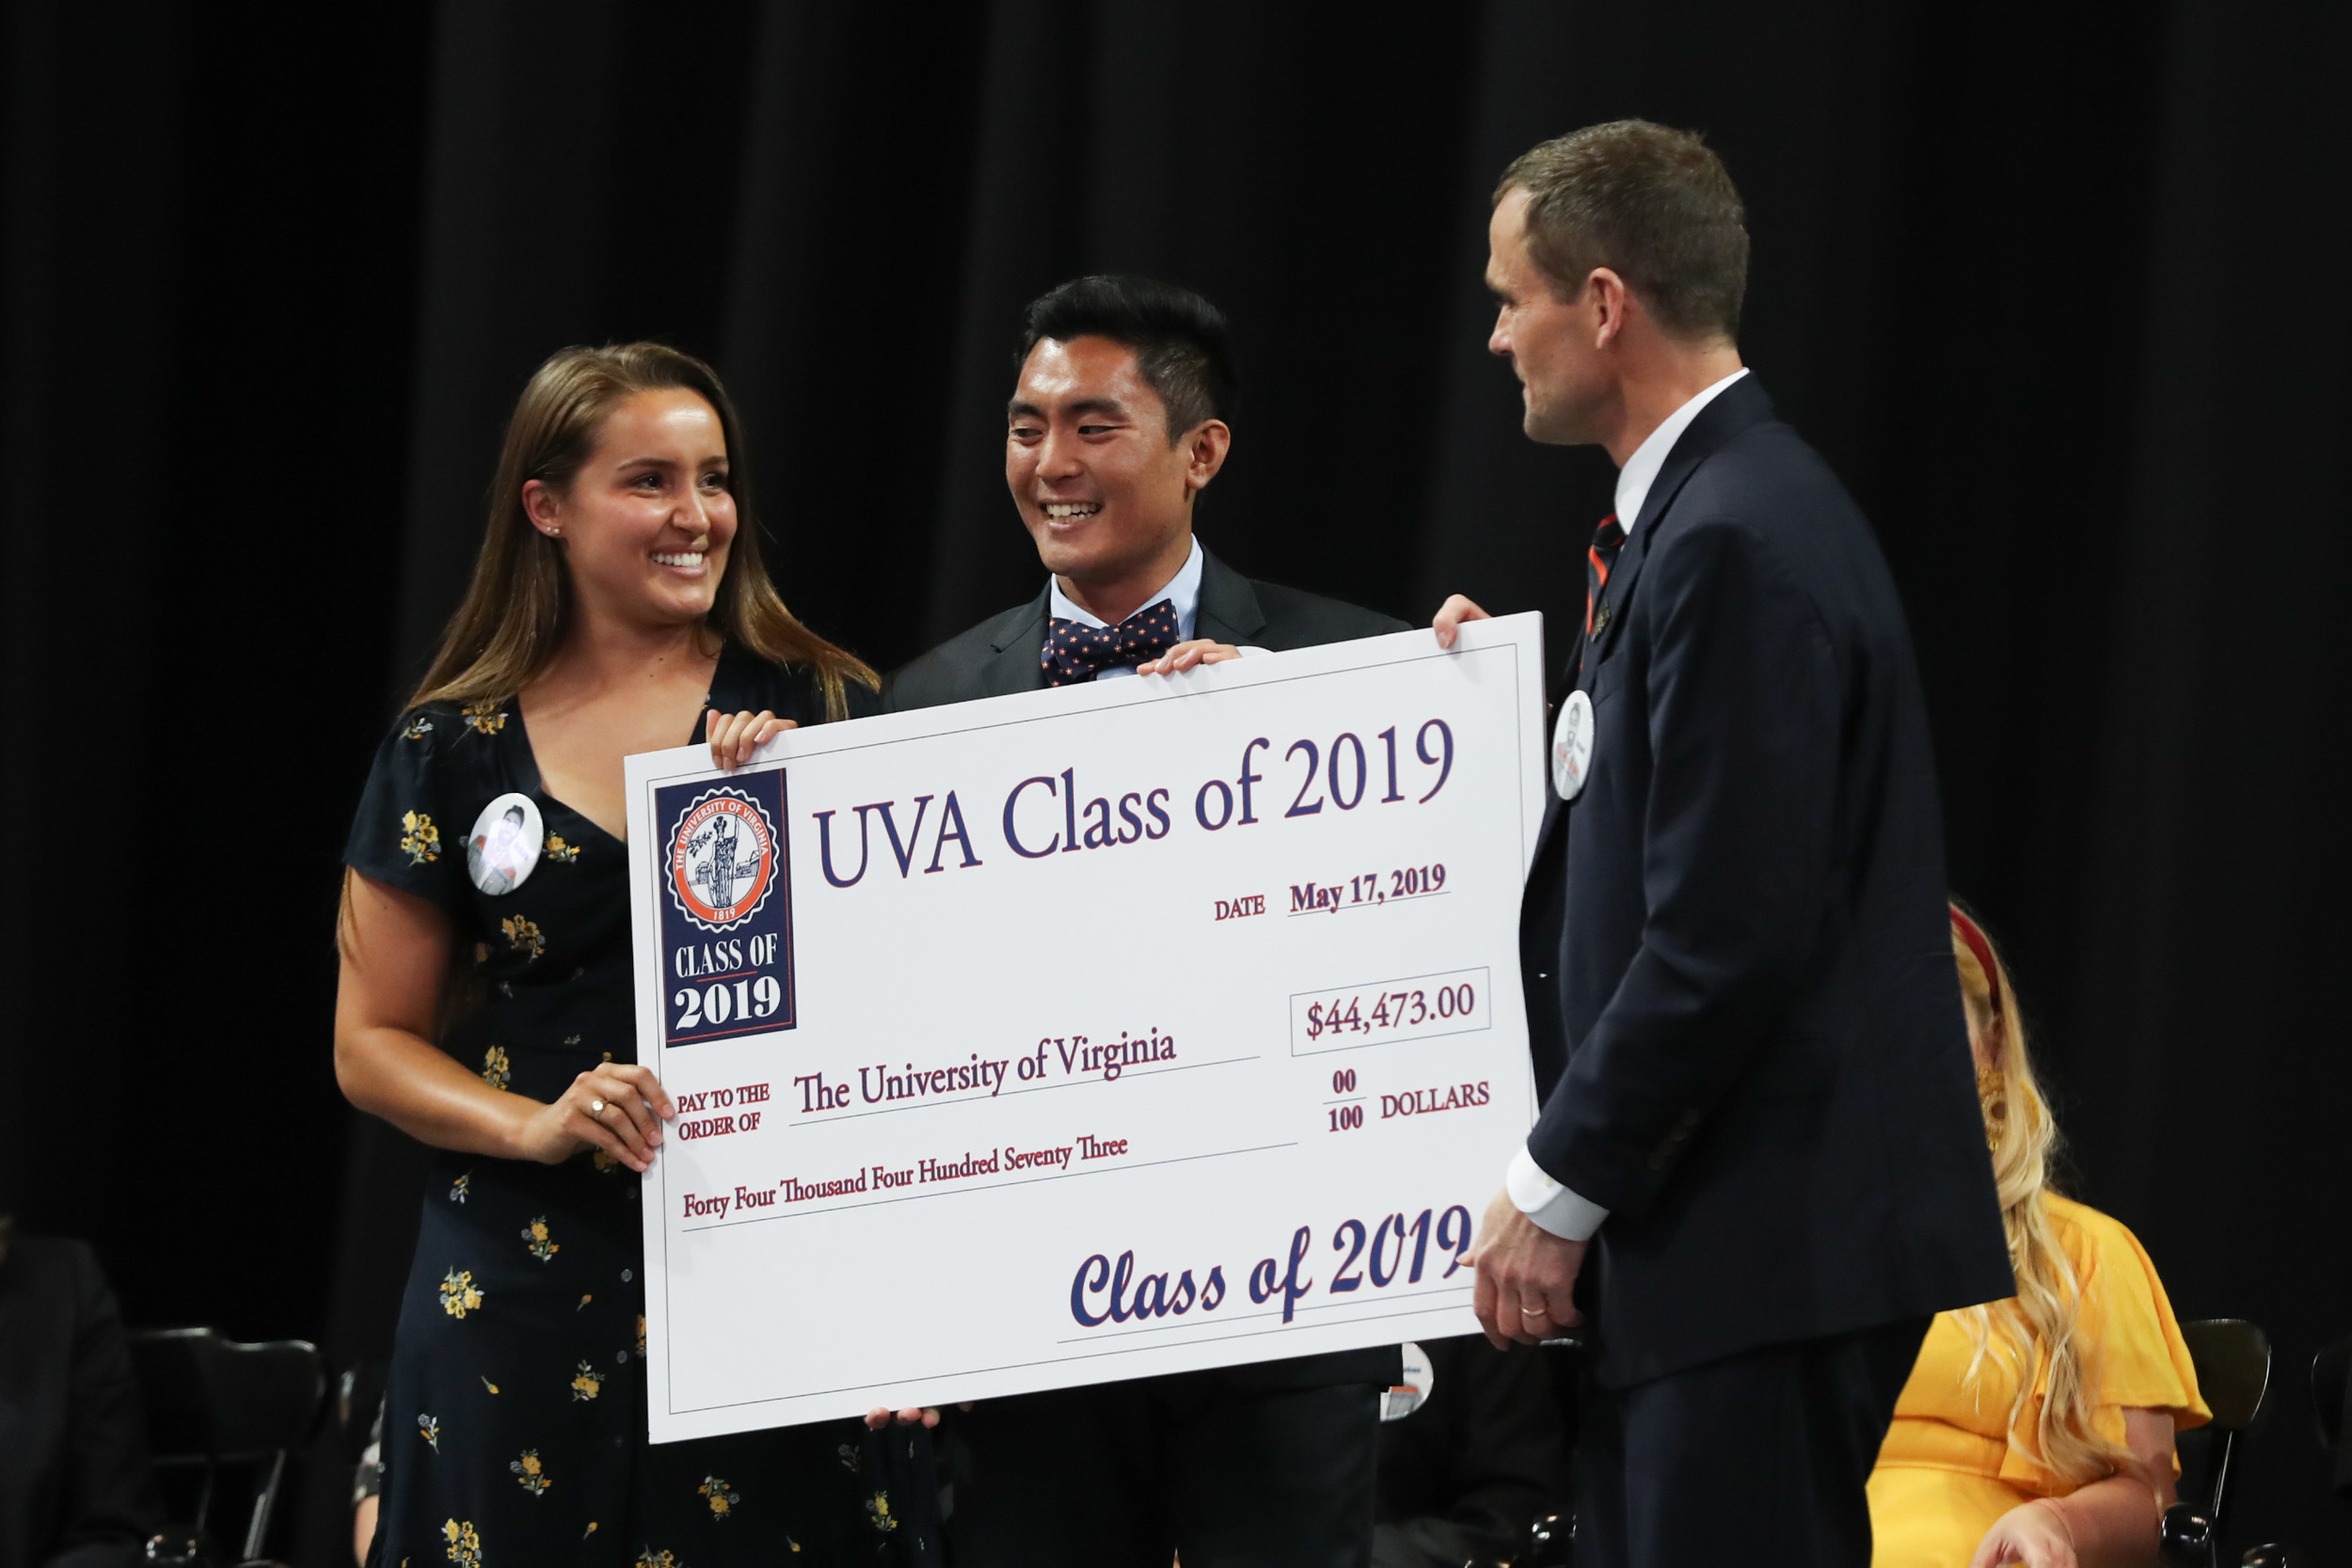 The Class of 2019 raised more than $44,000 for UVA. President Jim Ryan accepted the check during Friday's Valedictory Exercises from Class Giving Campaign members Rachel Clark and Paco Abiad.